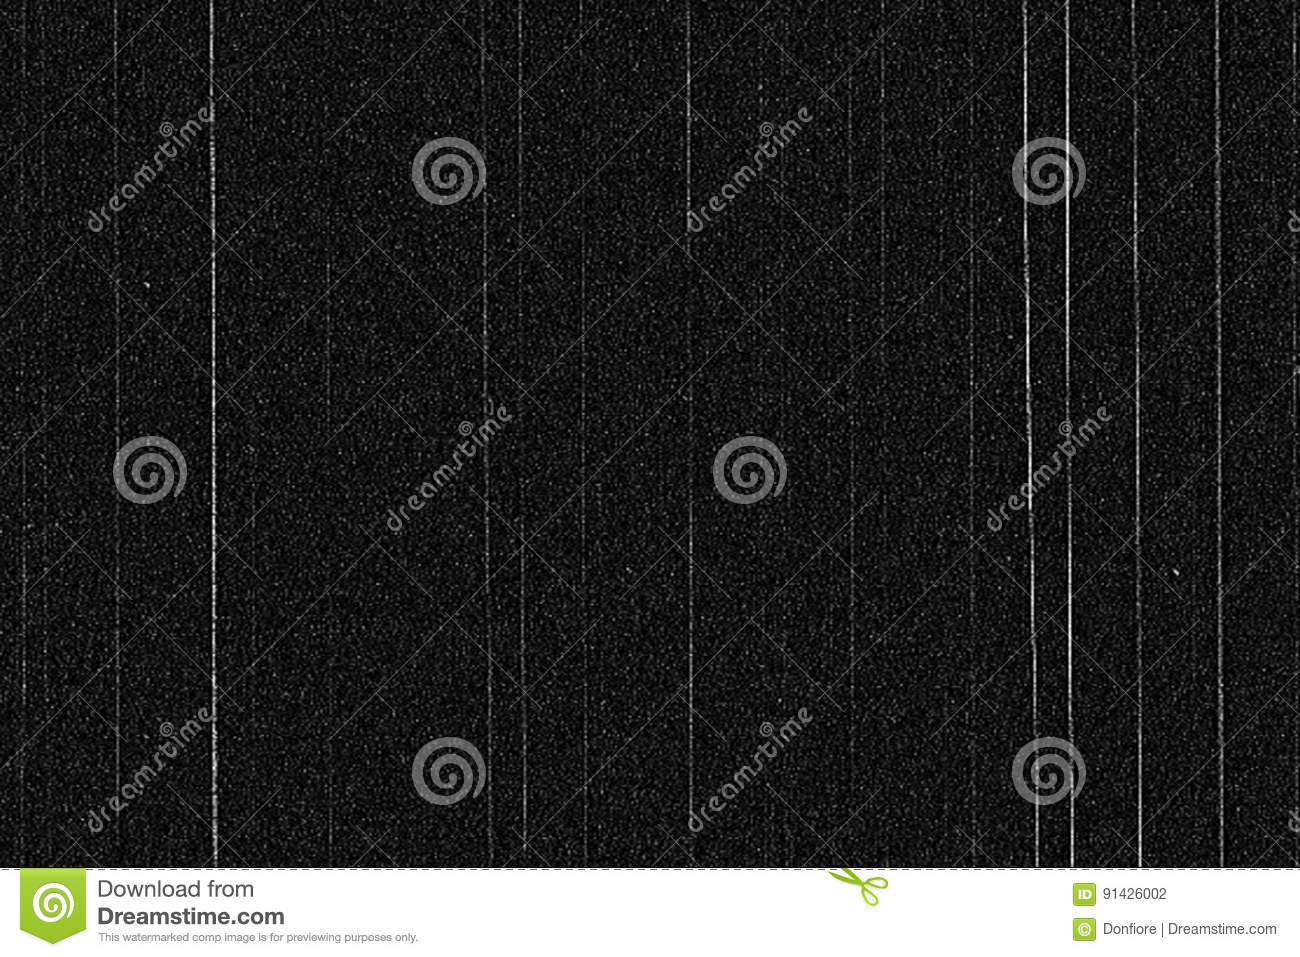 Colorful Background Realistic Flickering, Analog Vintage TV Signal